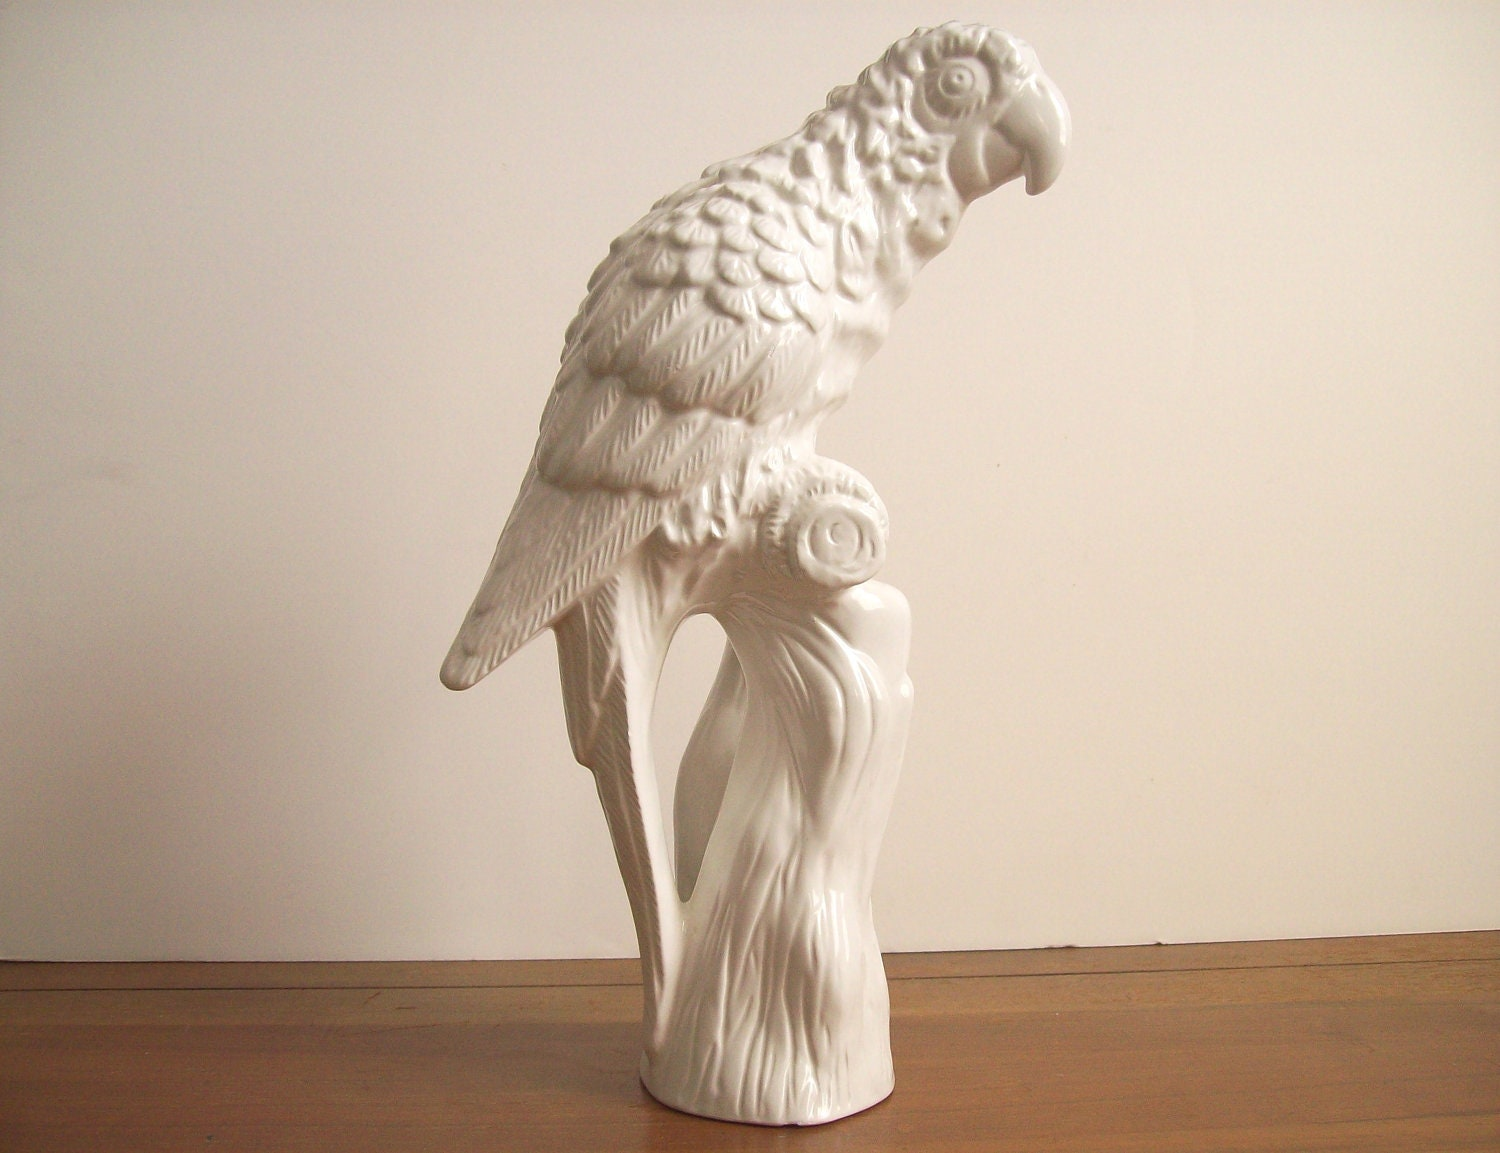 Large White Parrot Statue Figurine Ceramic Bird By